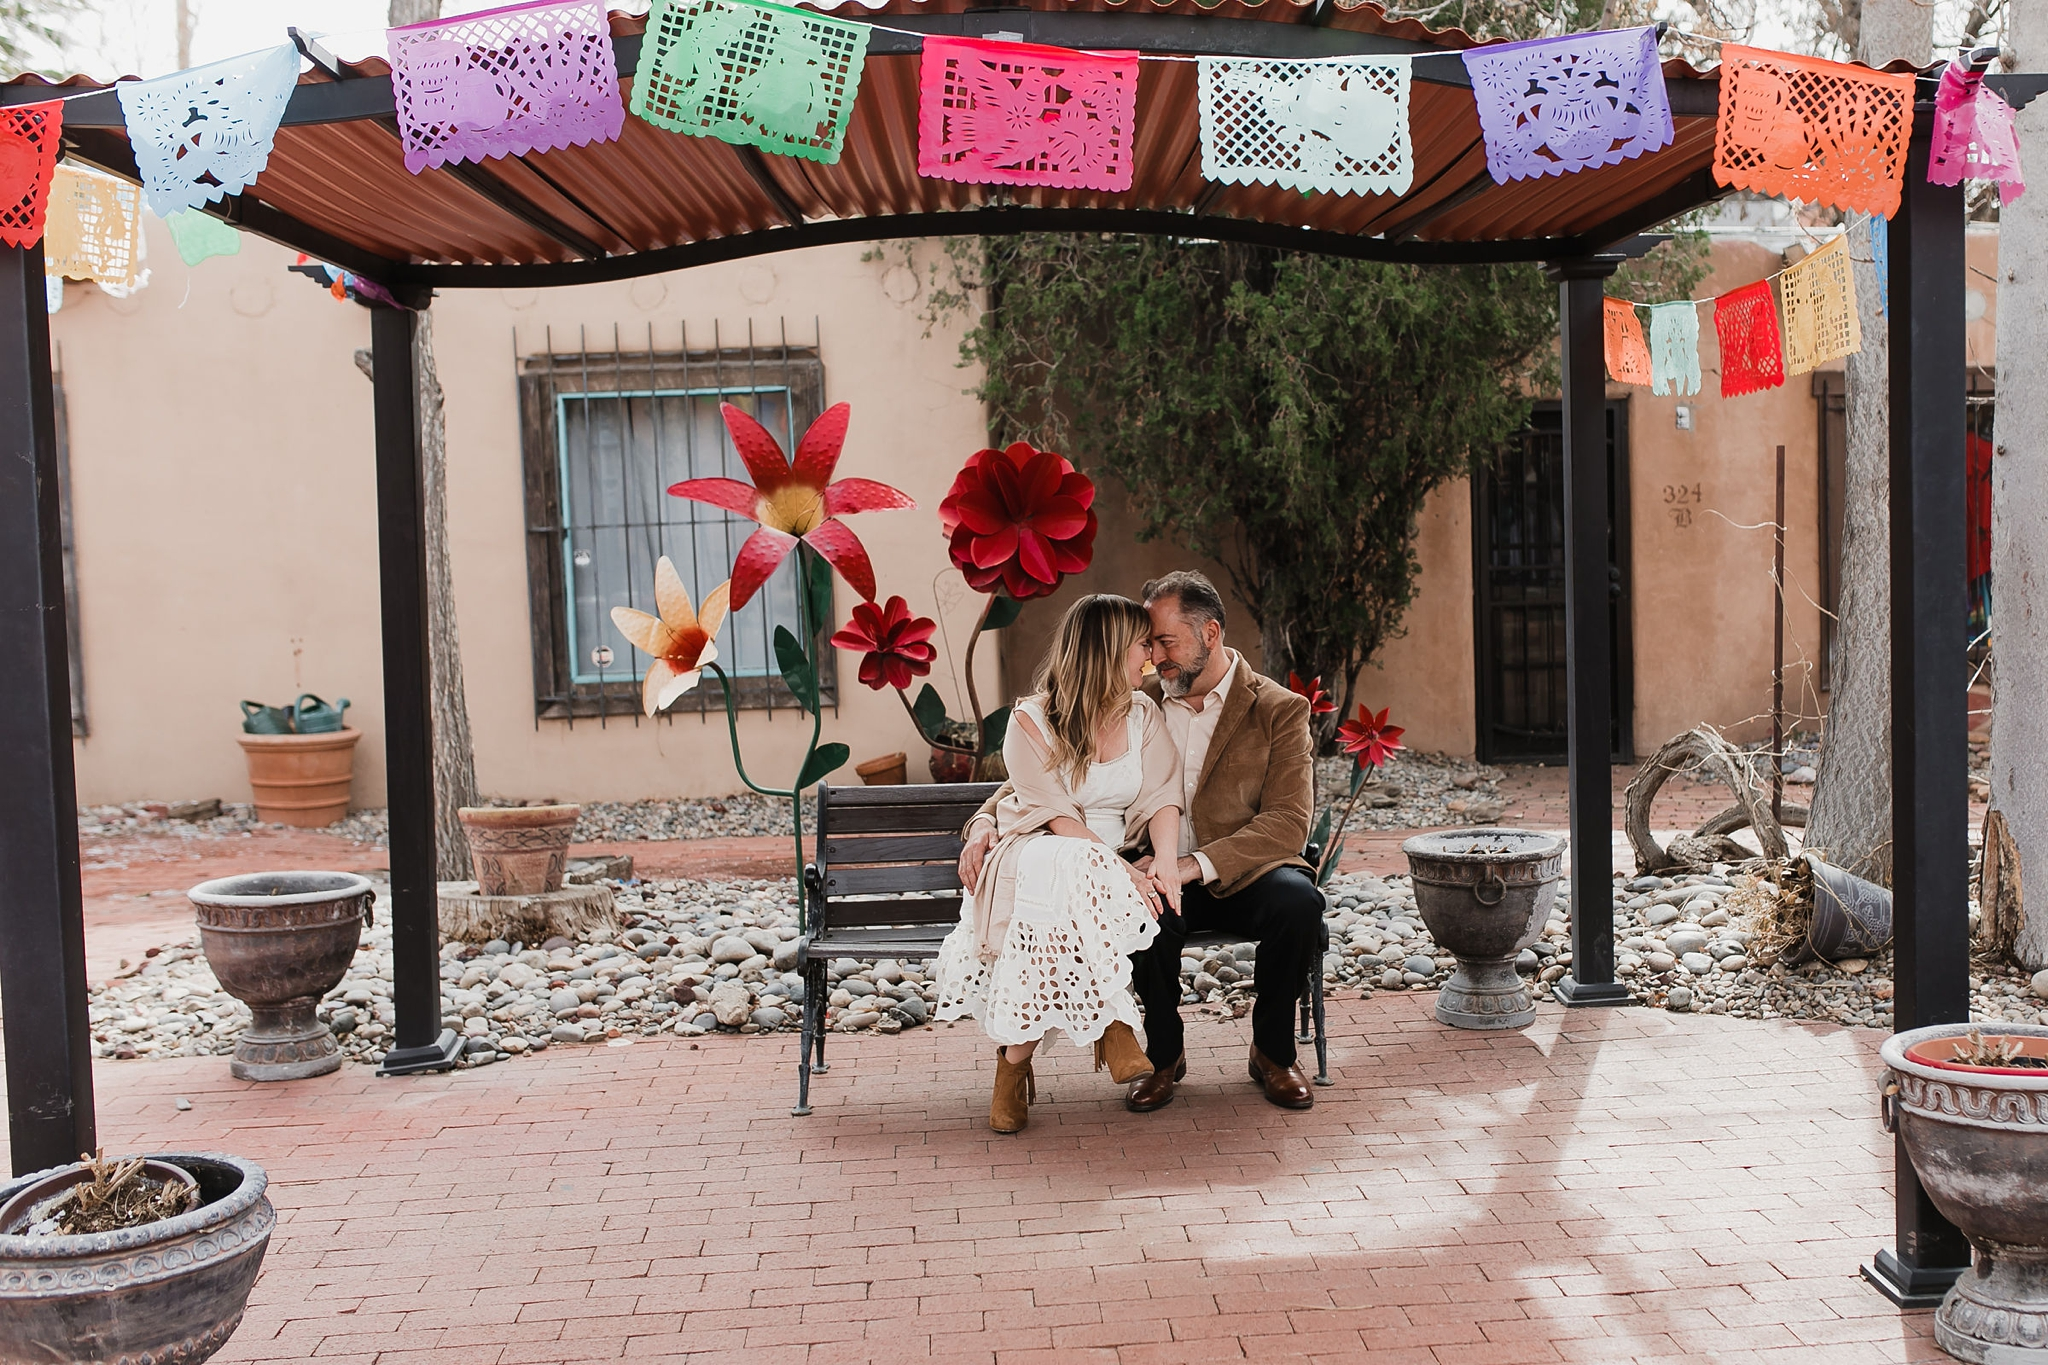 Alicia+lucia+photography+-+albuquerque+wedding+photographer+-+santa+fe+wedding+photography+-+new+mexico+wedding+photographer+-+new+mexico+wedding+-+new+mexico+engagement+-+albuquerque+engagement+-+old+town+engagement_0026.jpg